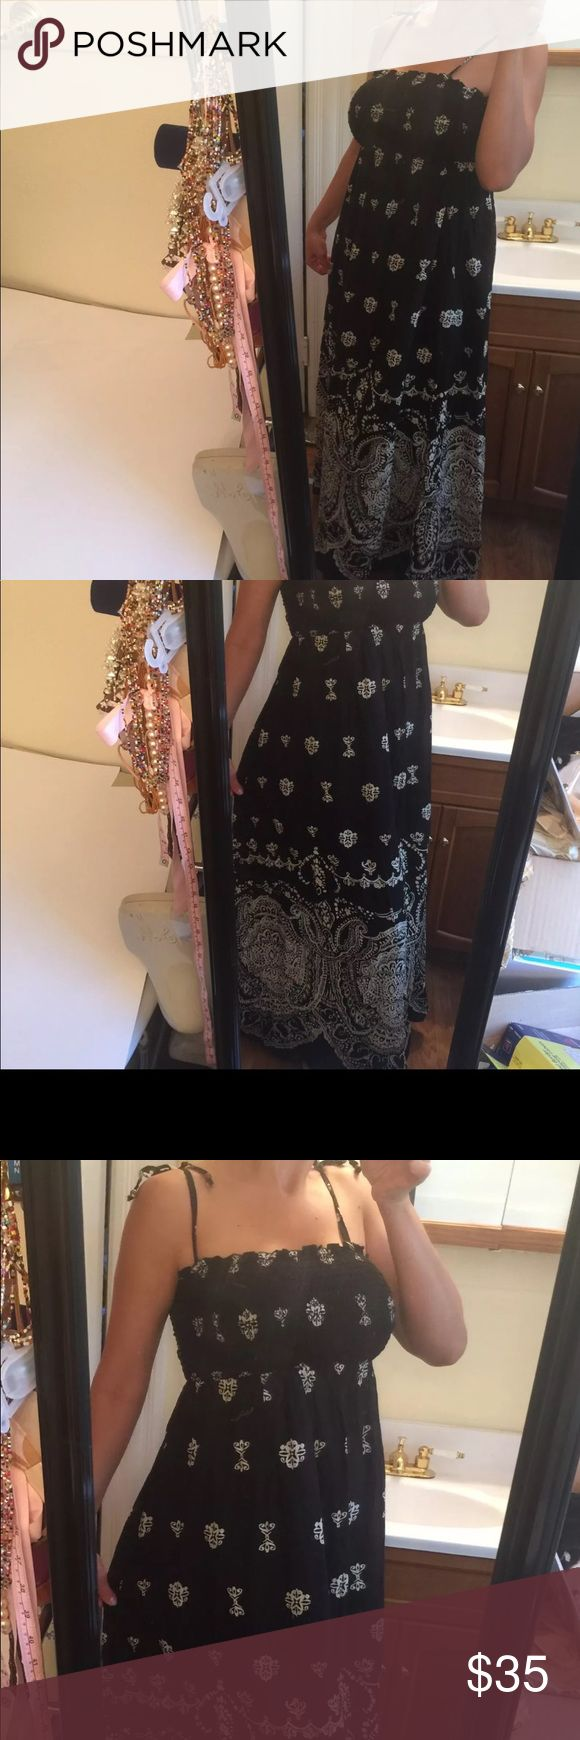 Gap maxi black and white dress S New GAP Maxi Dress S New . Gorgeous dress. Skirt has a full maxi black underskirt as shown on the pic. Stretchy tube top. Full coverage, don't need a bra . Original $99 GAP Dresses Maxi